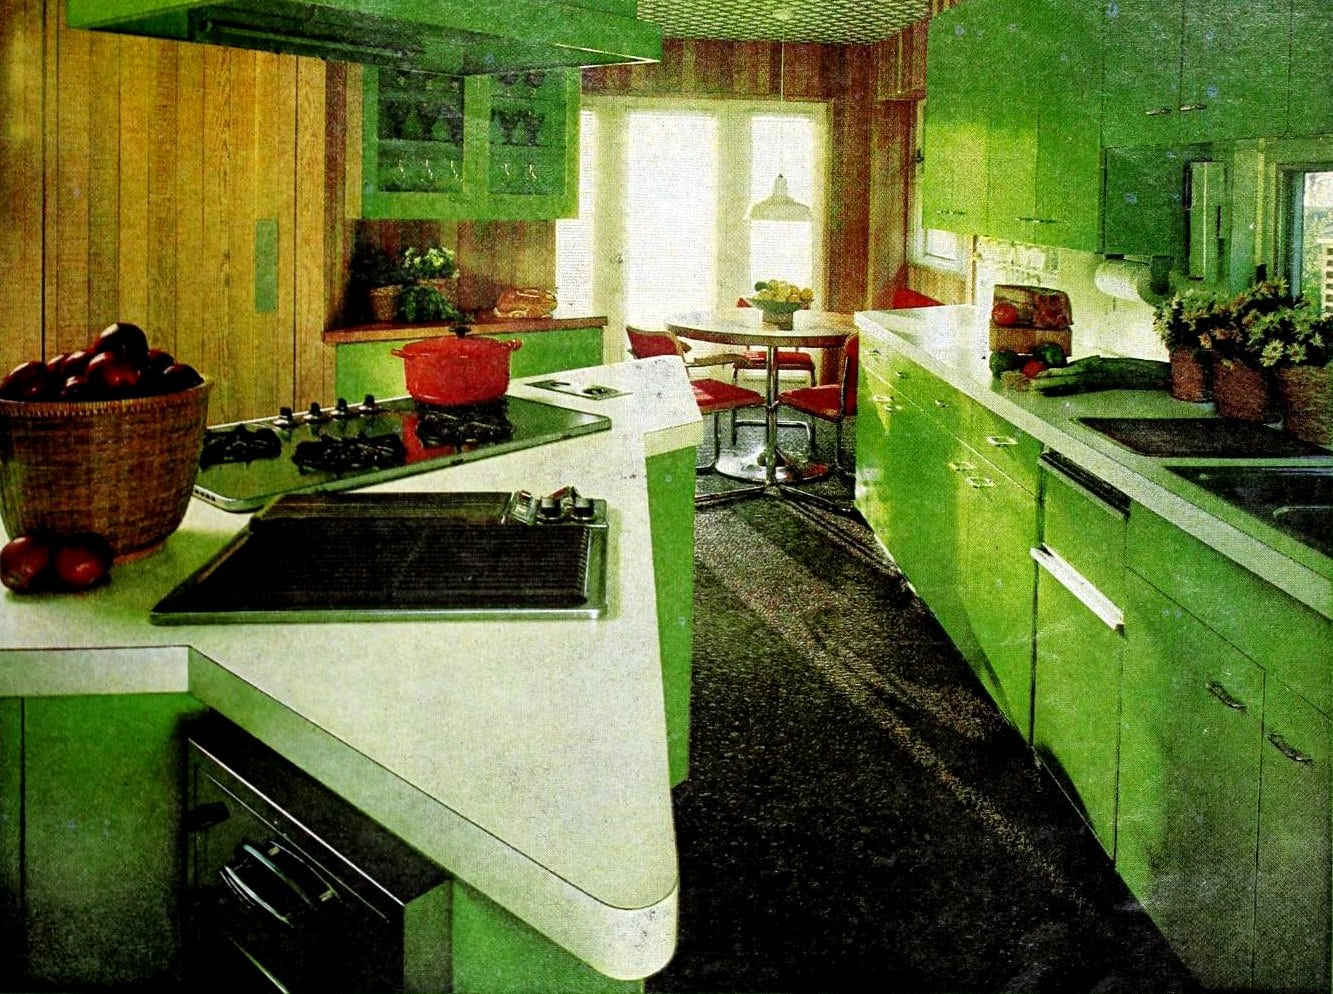 Green retro kitchen with funky pointed kitchen island (1976)